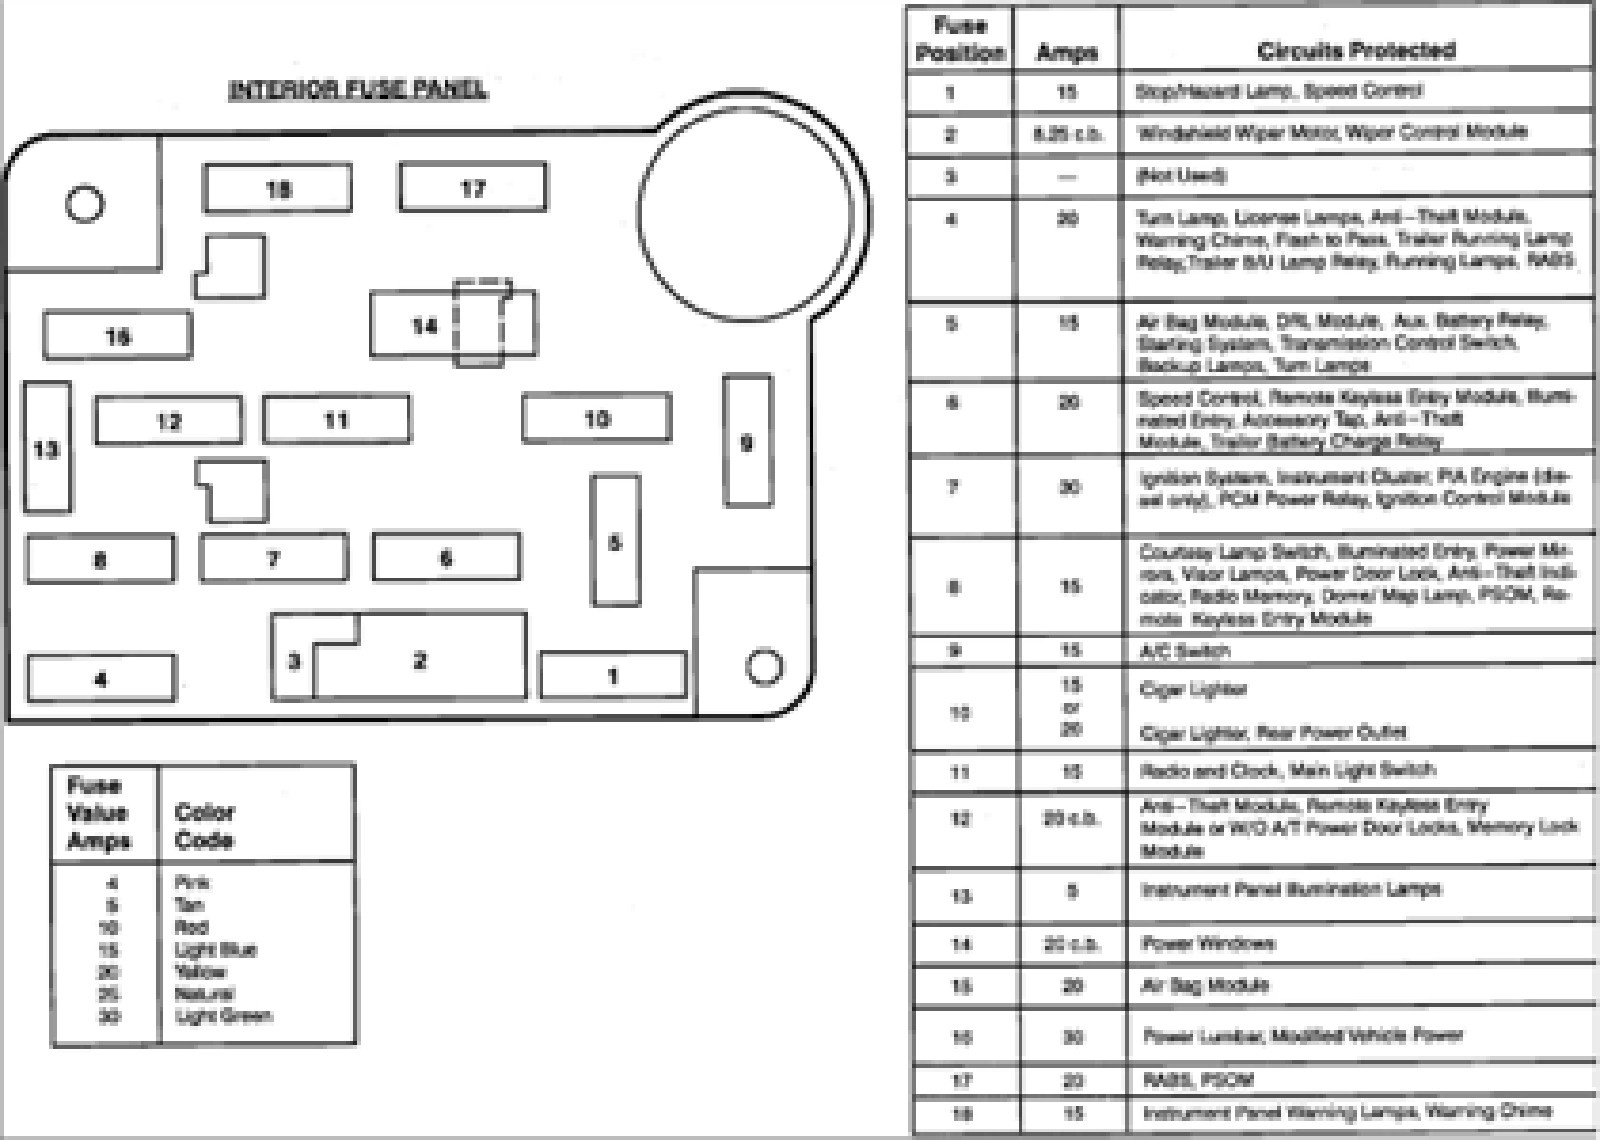 pic 8862473225641007897 1600x1200 1989 ford ranger fuse box diagram 1994 ford ranger fuse box layout 93 ford ranger fuse box diagram at reclaimingppi.co